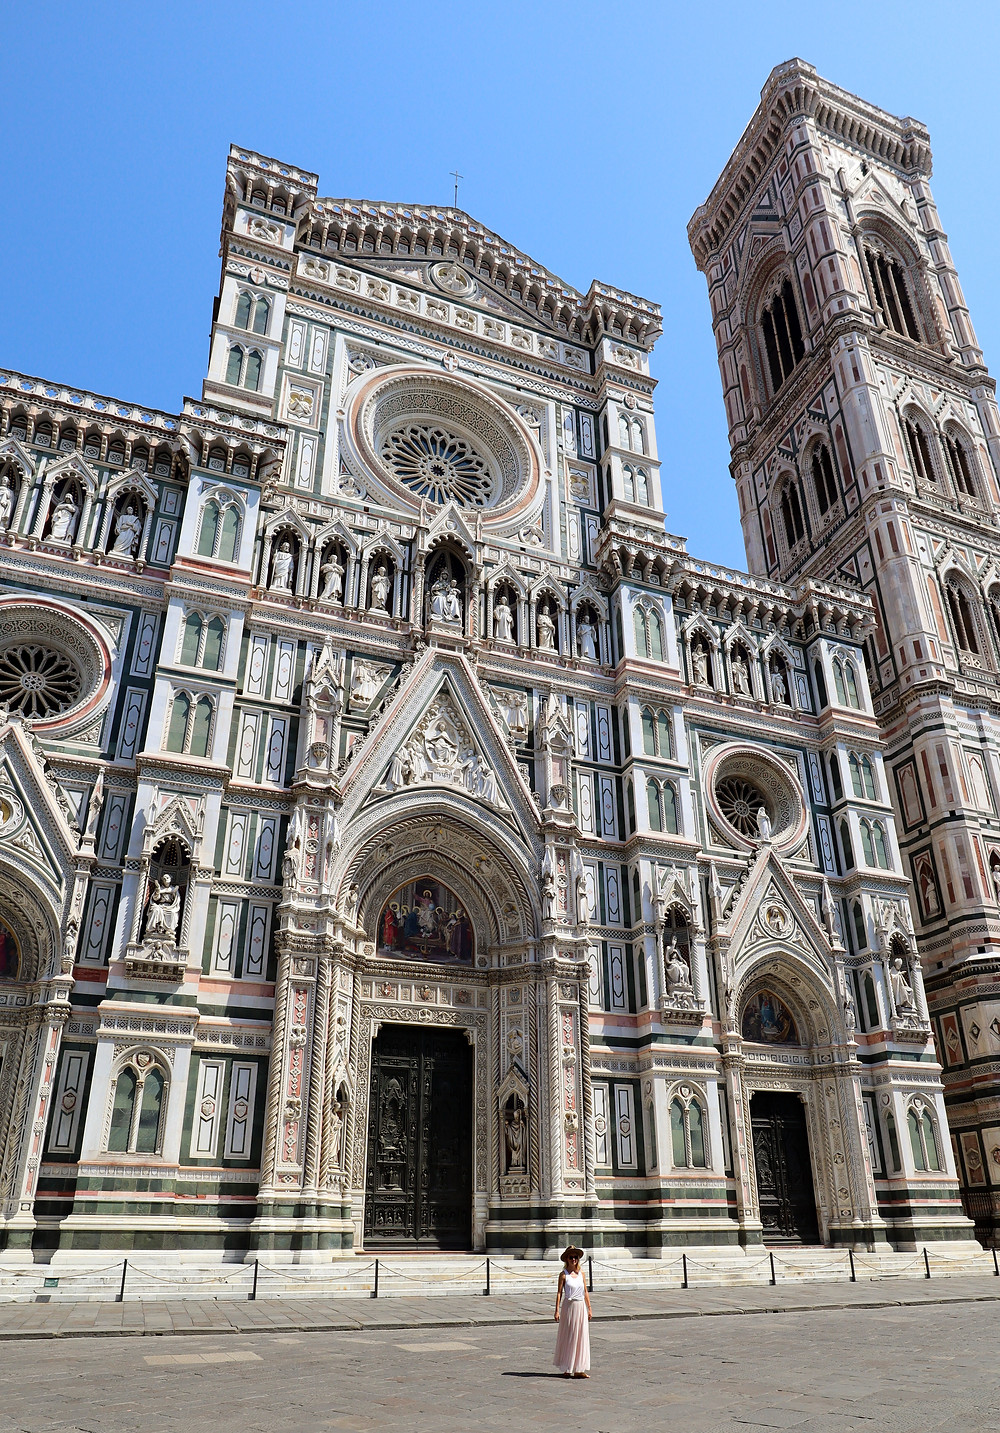 Duomo di Firenze, Florence Catherdral